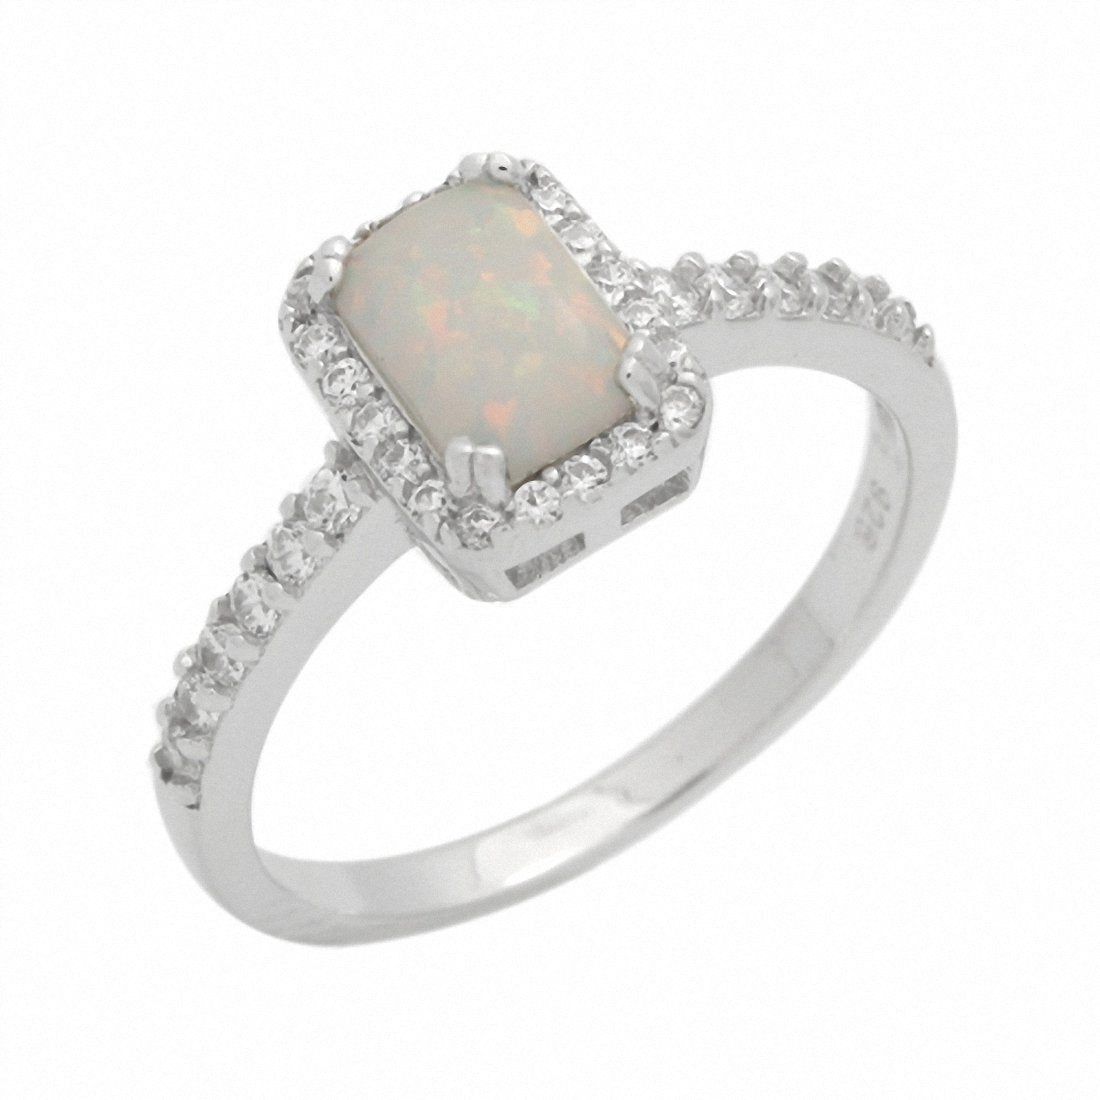 Halo Engagement Ring Radiant Lab Created White Opal 925 Sterling Silver